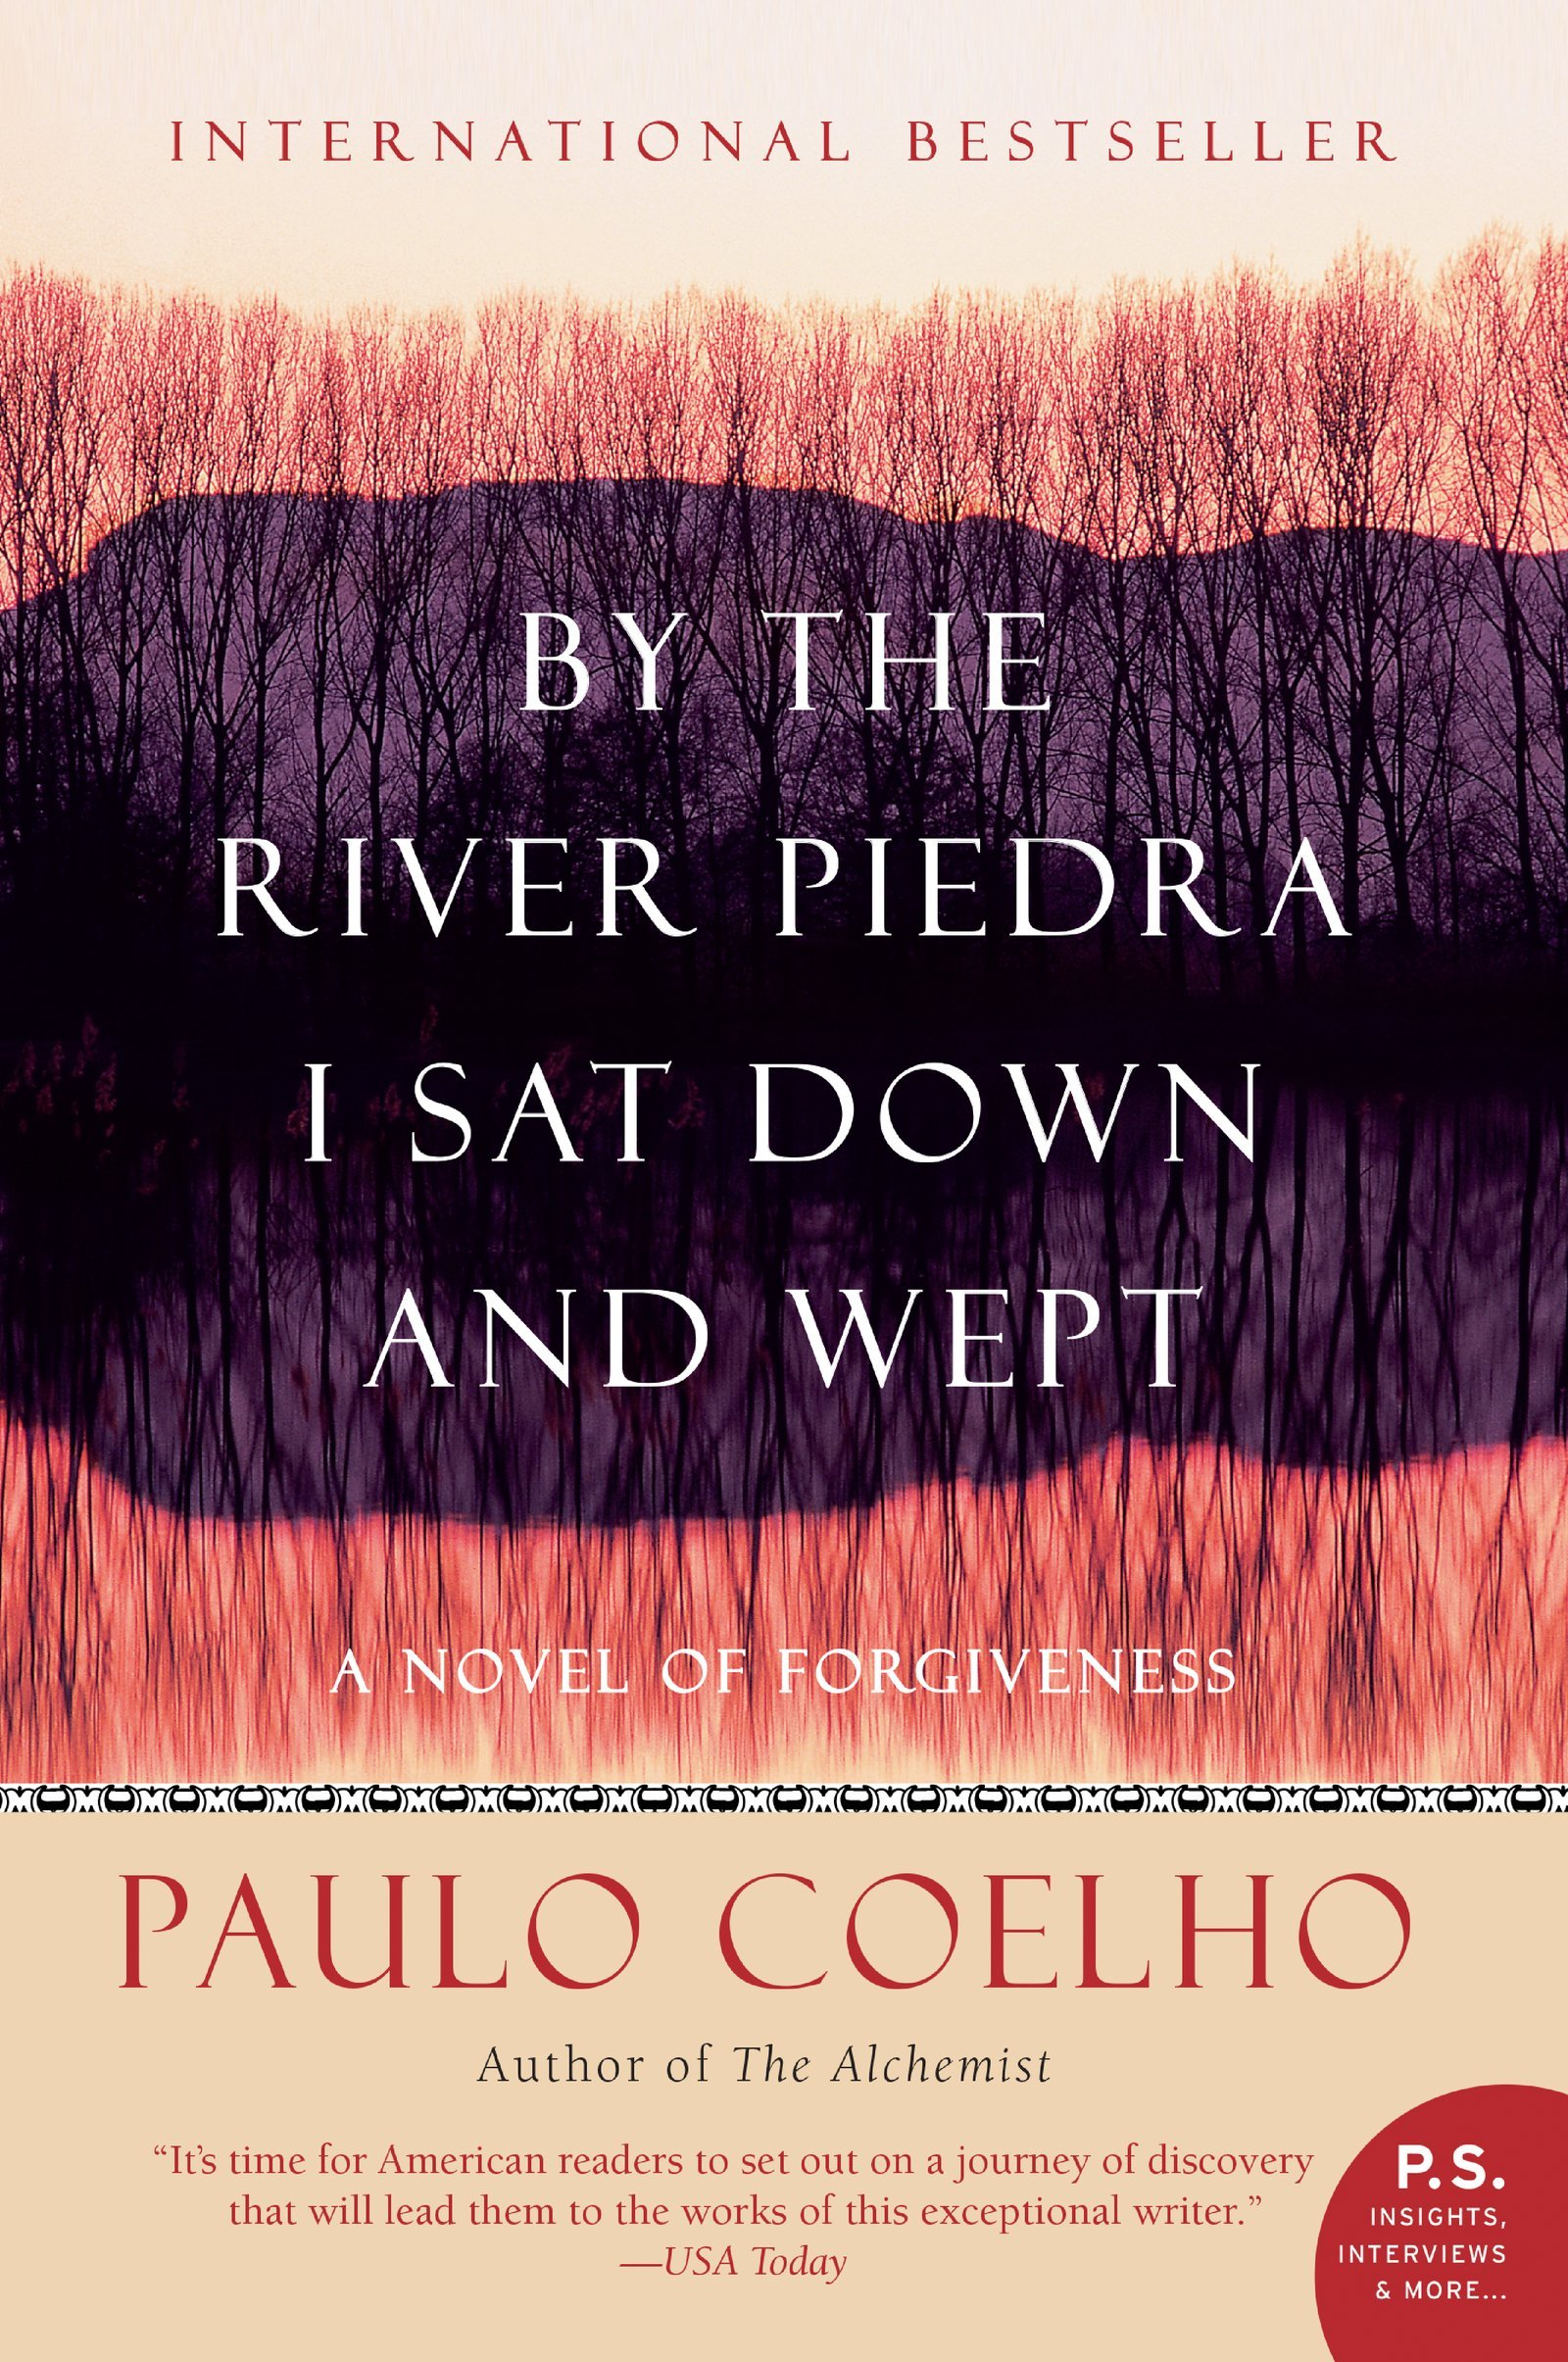 by the river piedra i sat down and wept a novel of forgiveness by the river piedra i sat down and wept a novel of forgiveness paulo coelho 9780061122095 amazon com books